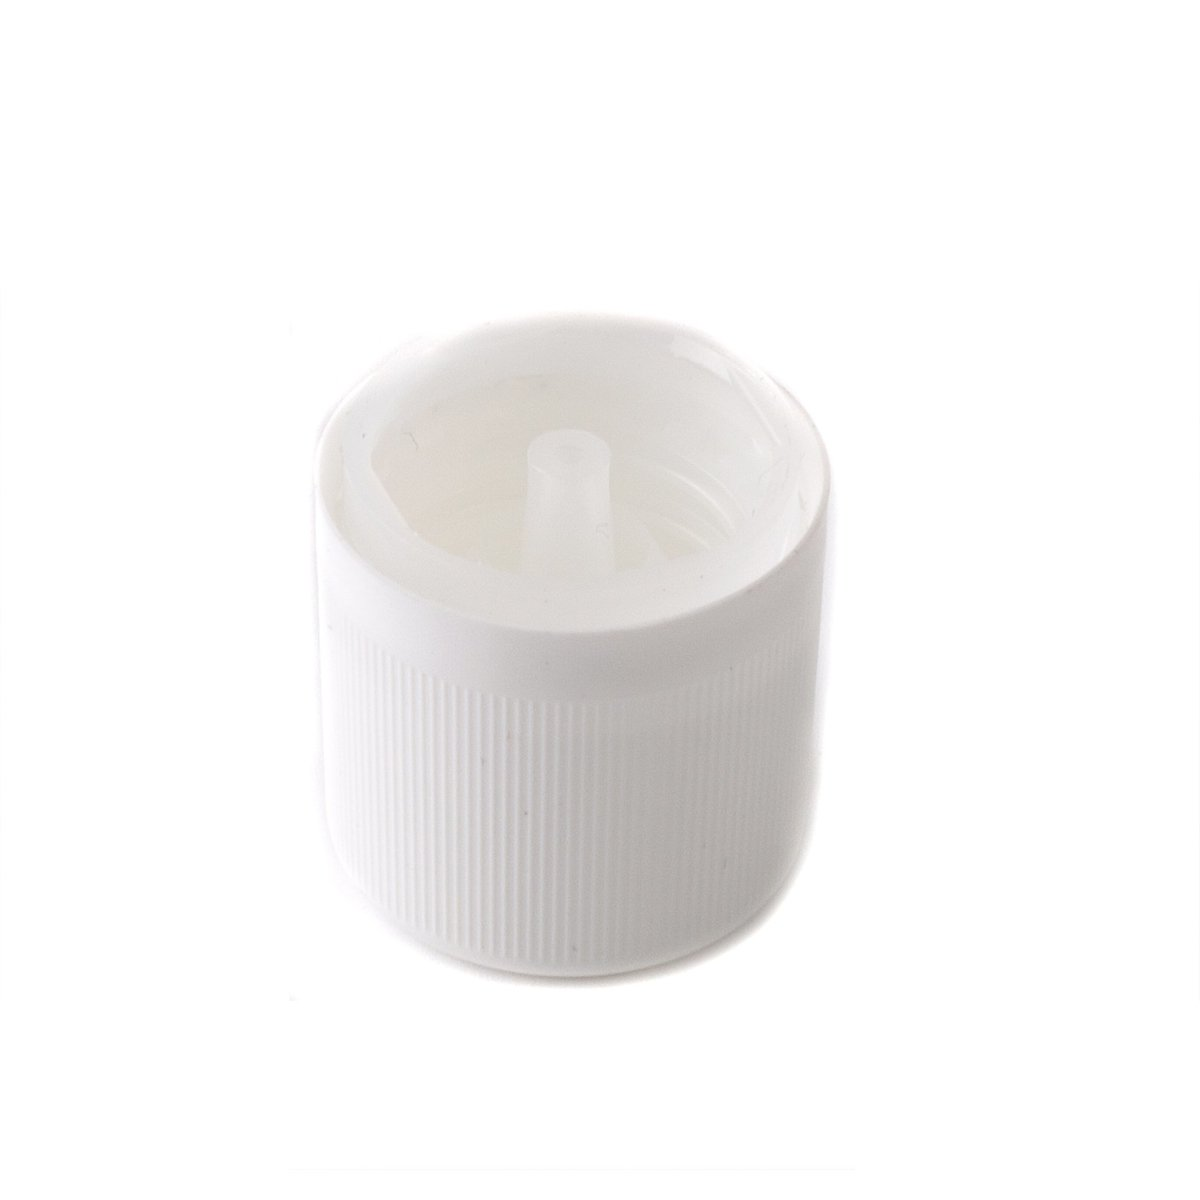 White 18mm Child Resistant Tamper Evident Caps - Mystic Moments UK